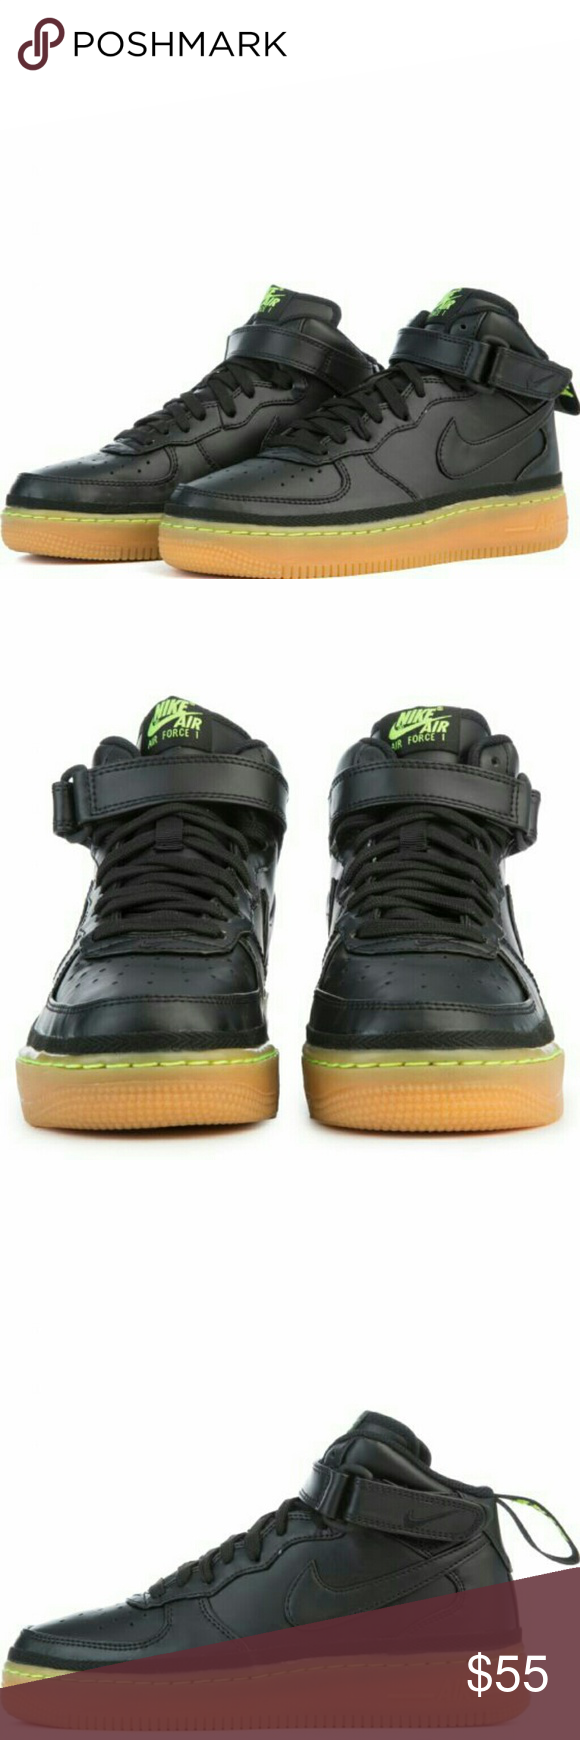 sports shoes 8be28 23c71 NEW Nike Air Force 1 Mid LV8 Black/Lime Green/Gum NEW Nike Air Force ...